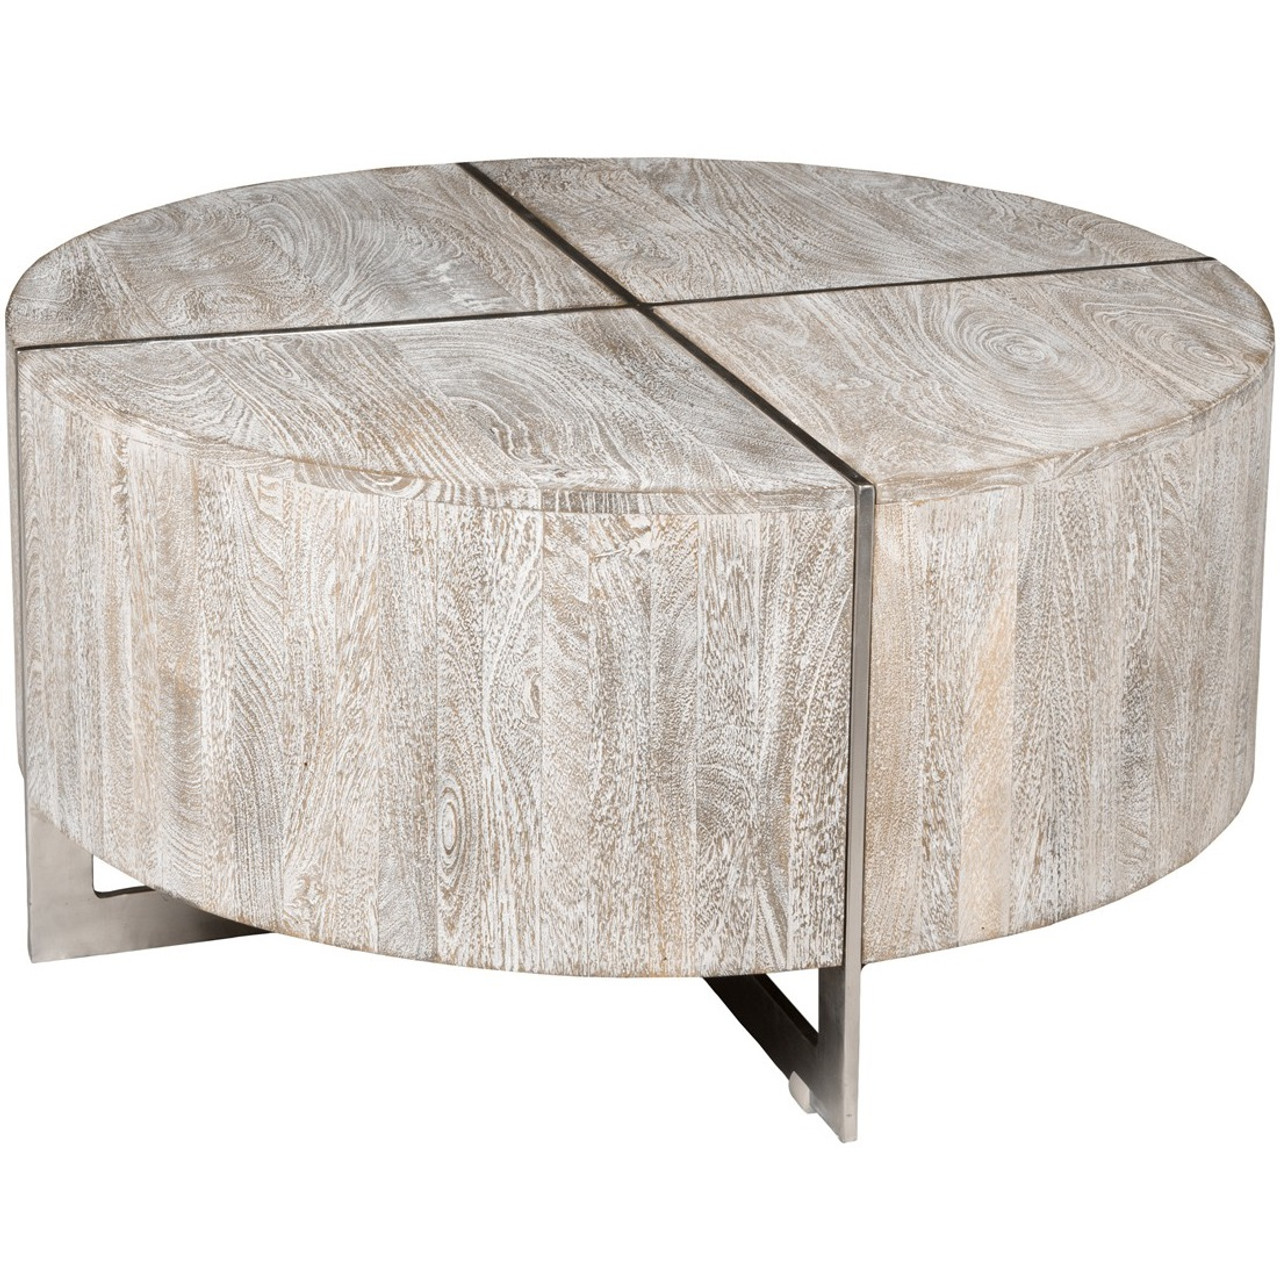 Uptown Whitewashed Solid Wood Round Coffee Table 36"